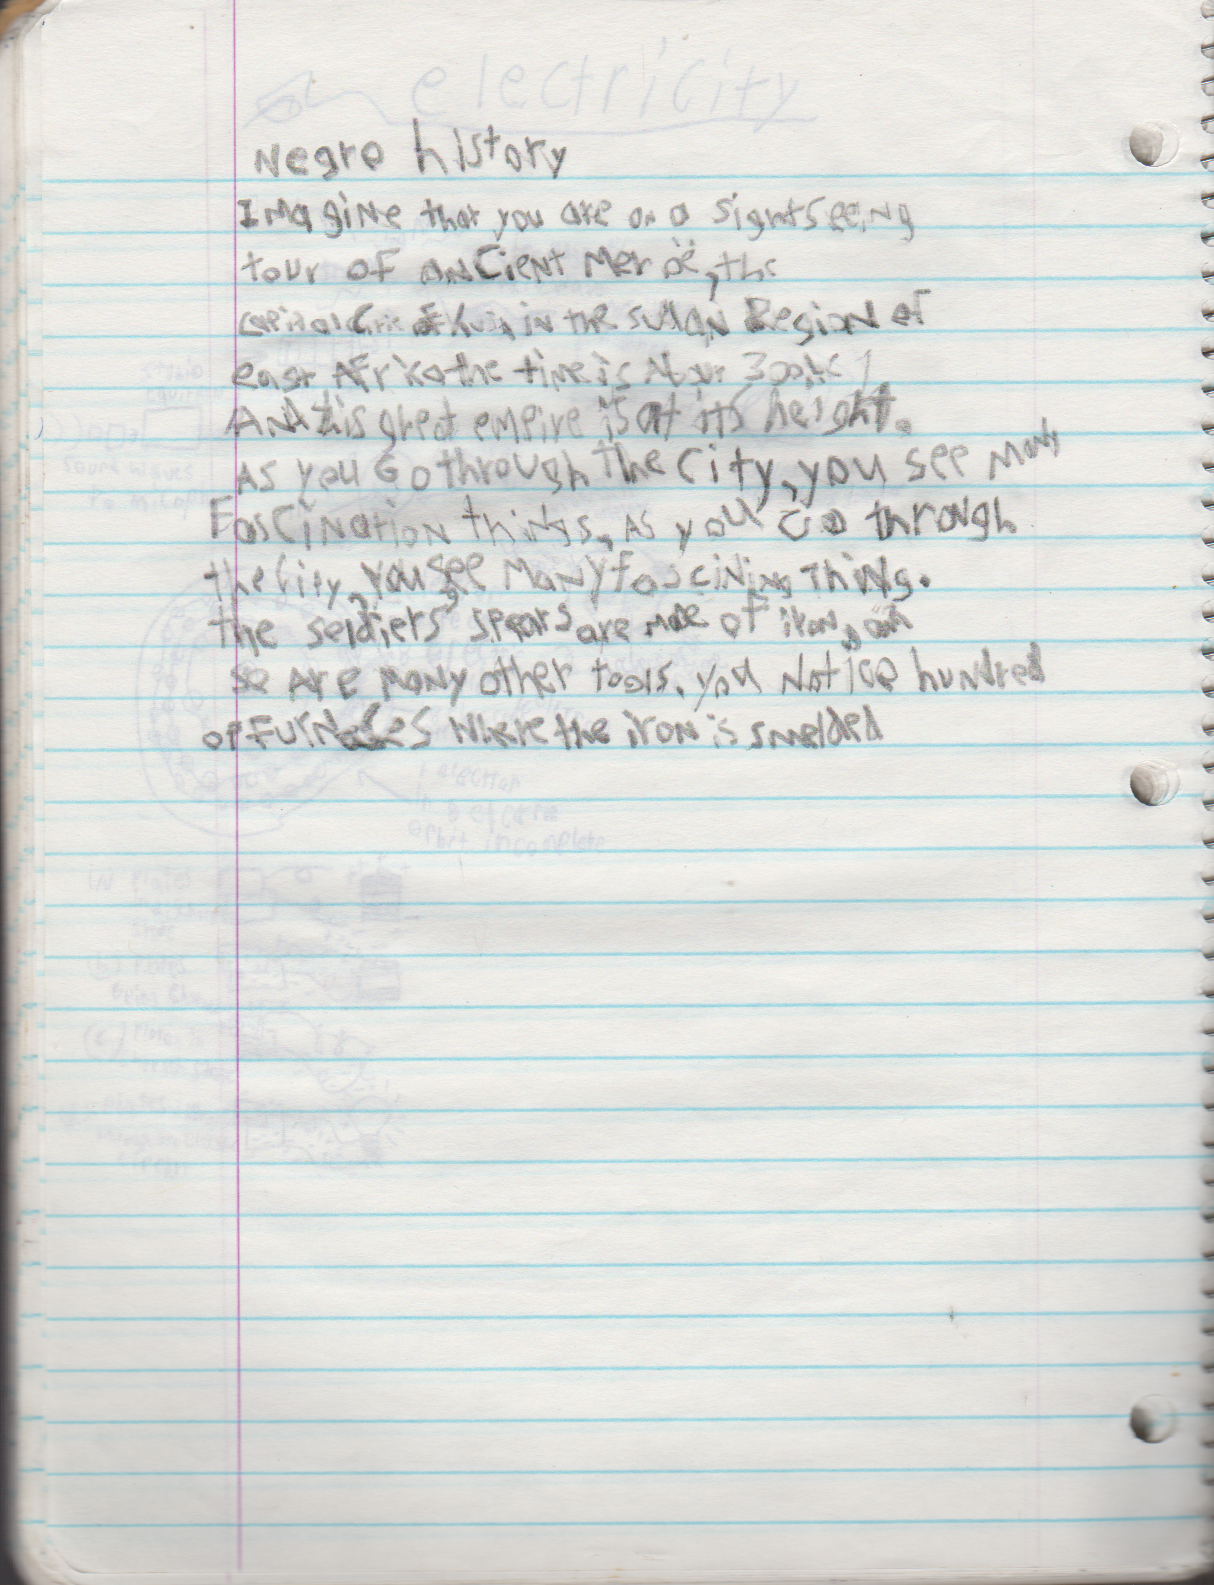 1996-08-18 - Saturday - 11 yr old Joey Arnold's School Book, dates through to 1998 apx, mostly 96, Writings, Drawings, Etc-057.png